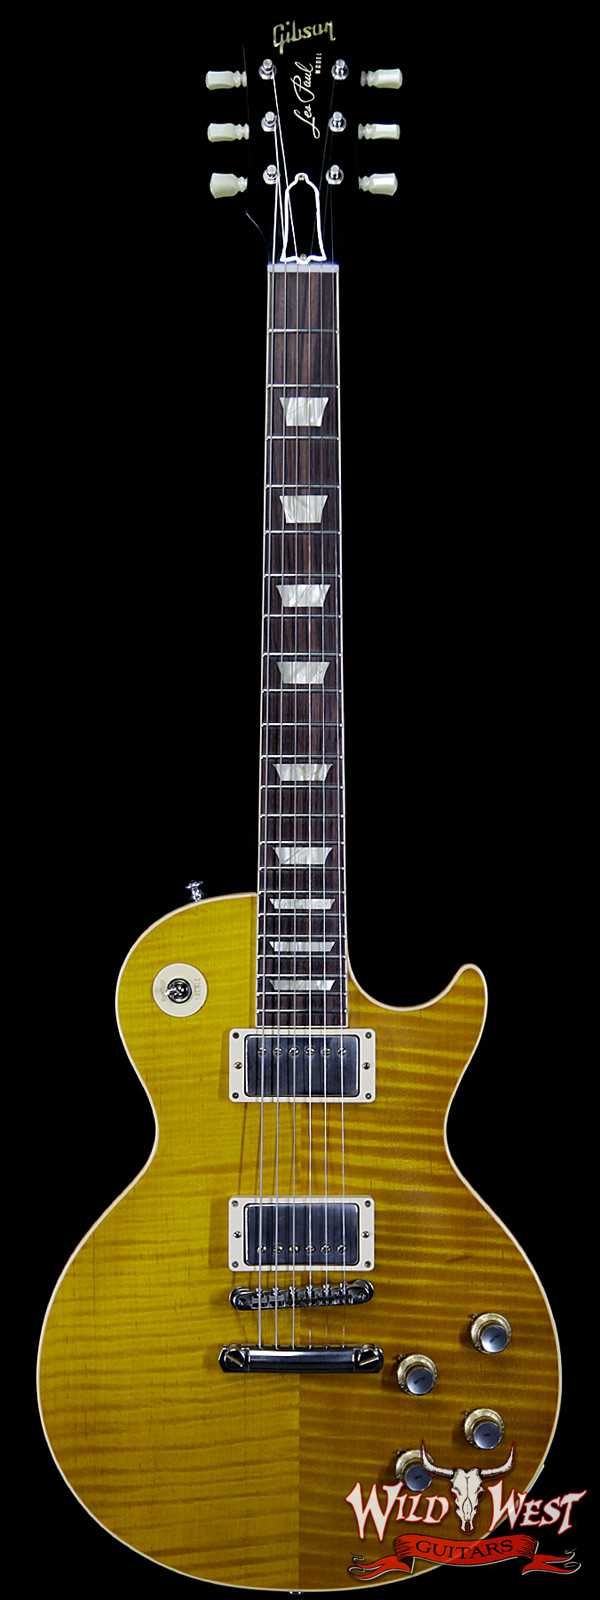 Gibson Custom Shop M2M Hand Selected Kill Top 1960 Les Paul Standard '60 Reissue R0 VOS Mojave Fade 8.40 LBS